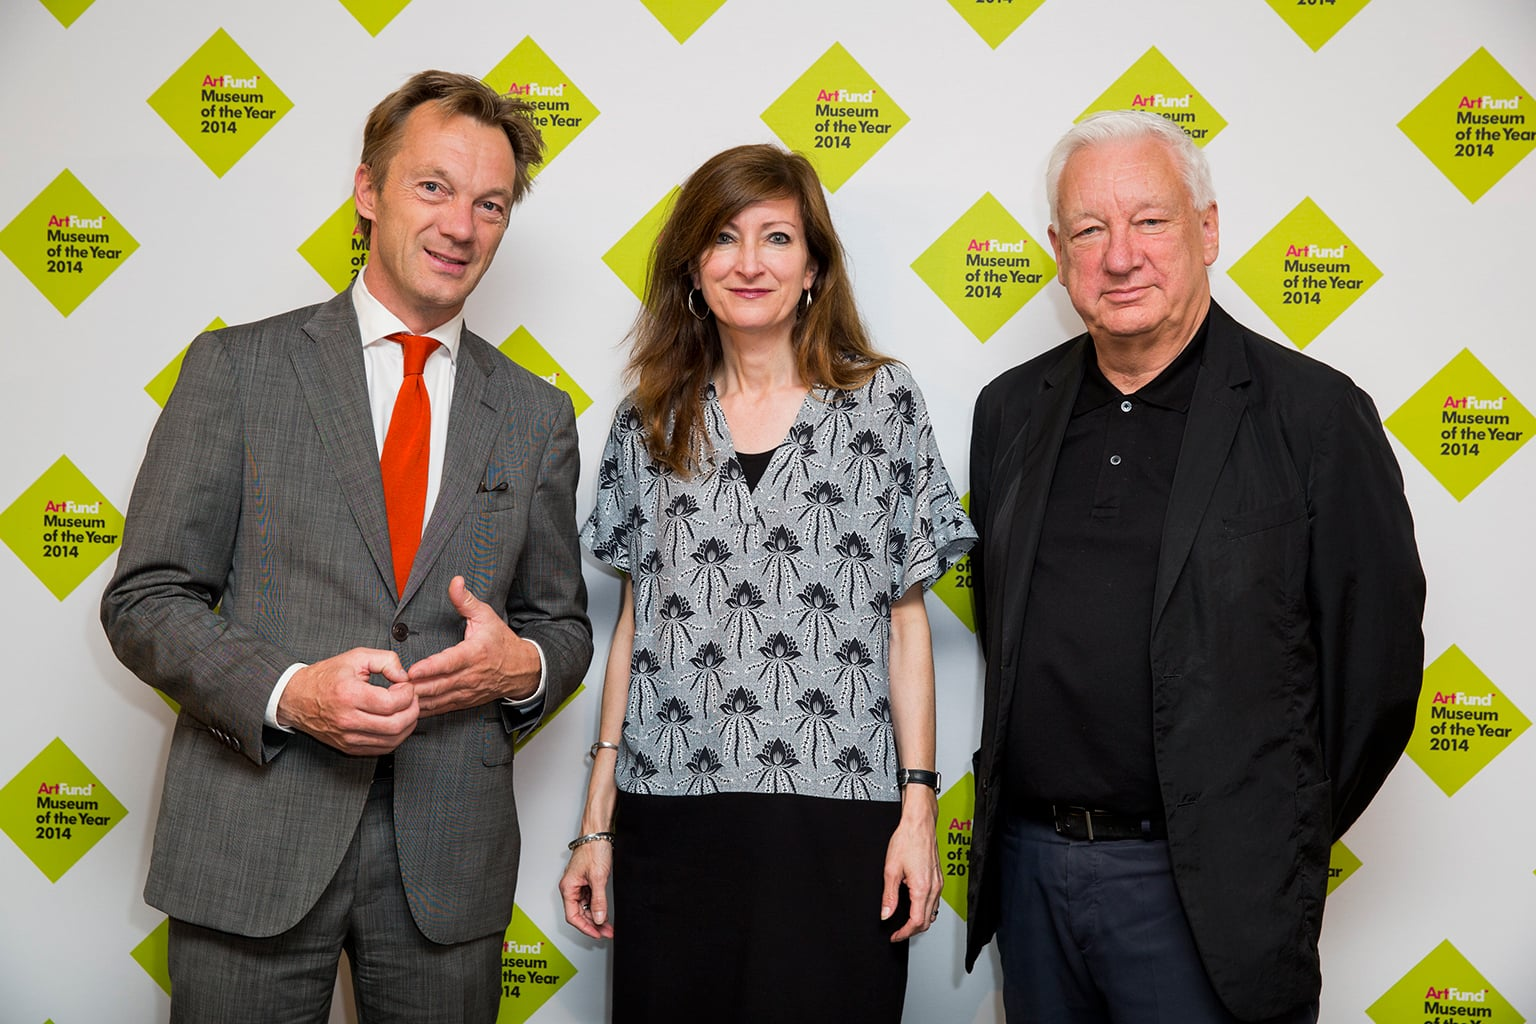 Judges Wim Pijbes, Sally Bacon and Michael Craig-Martin